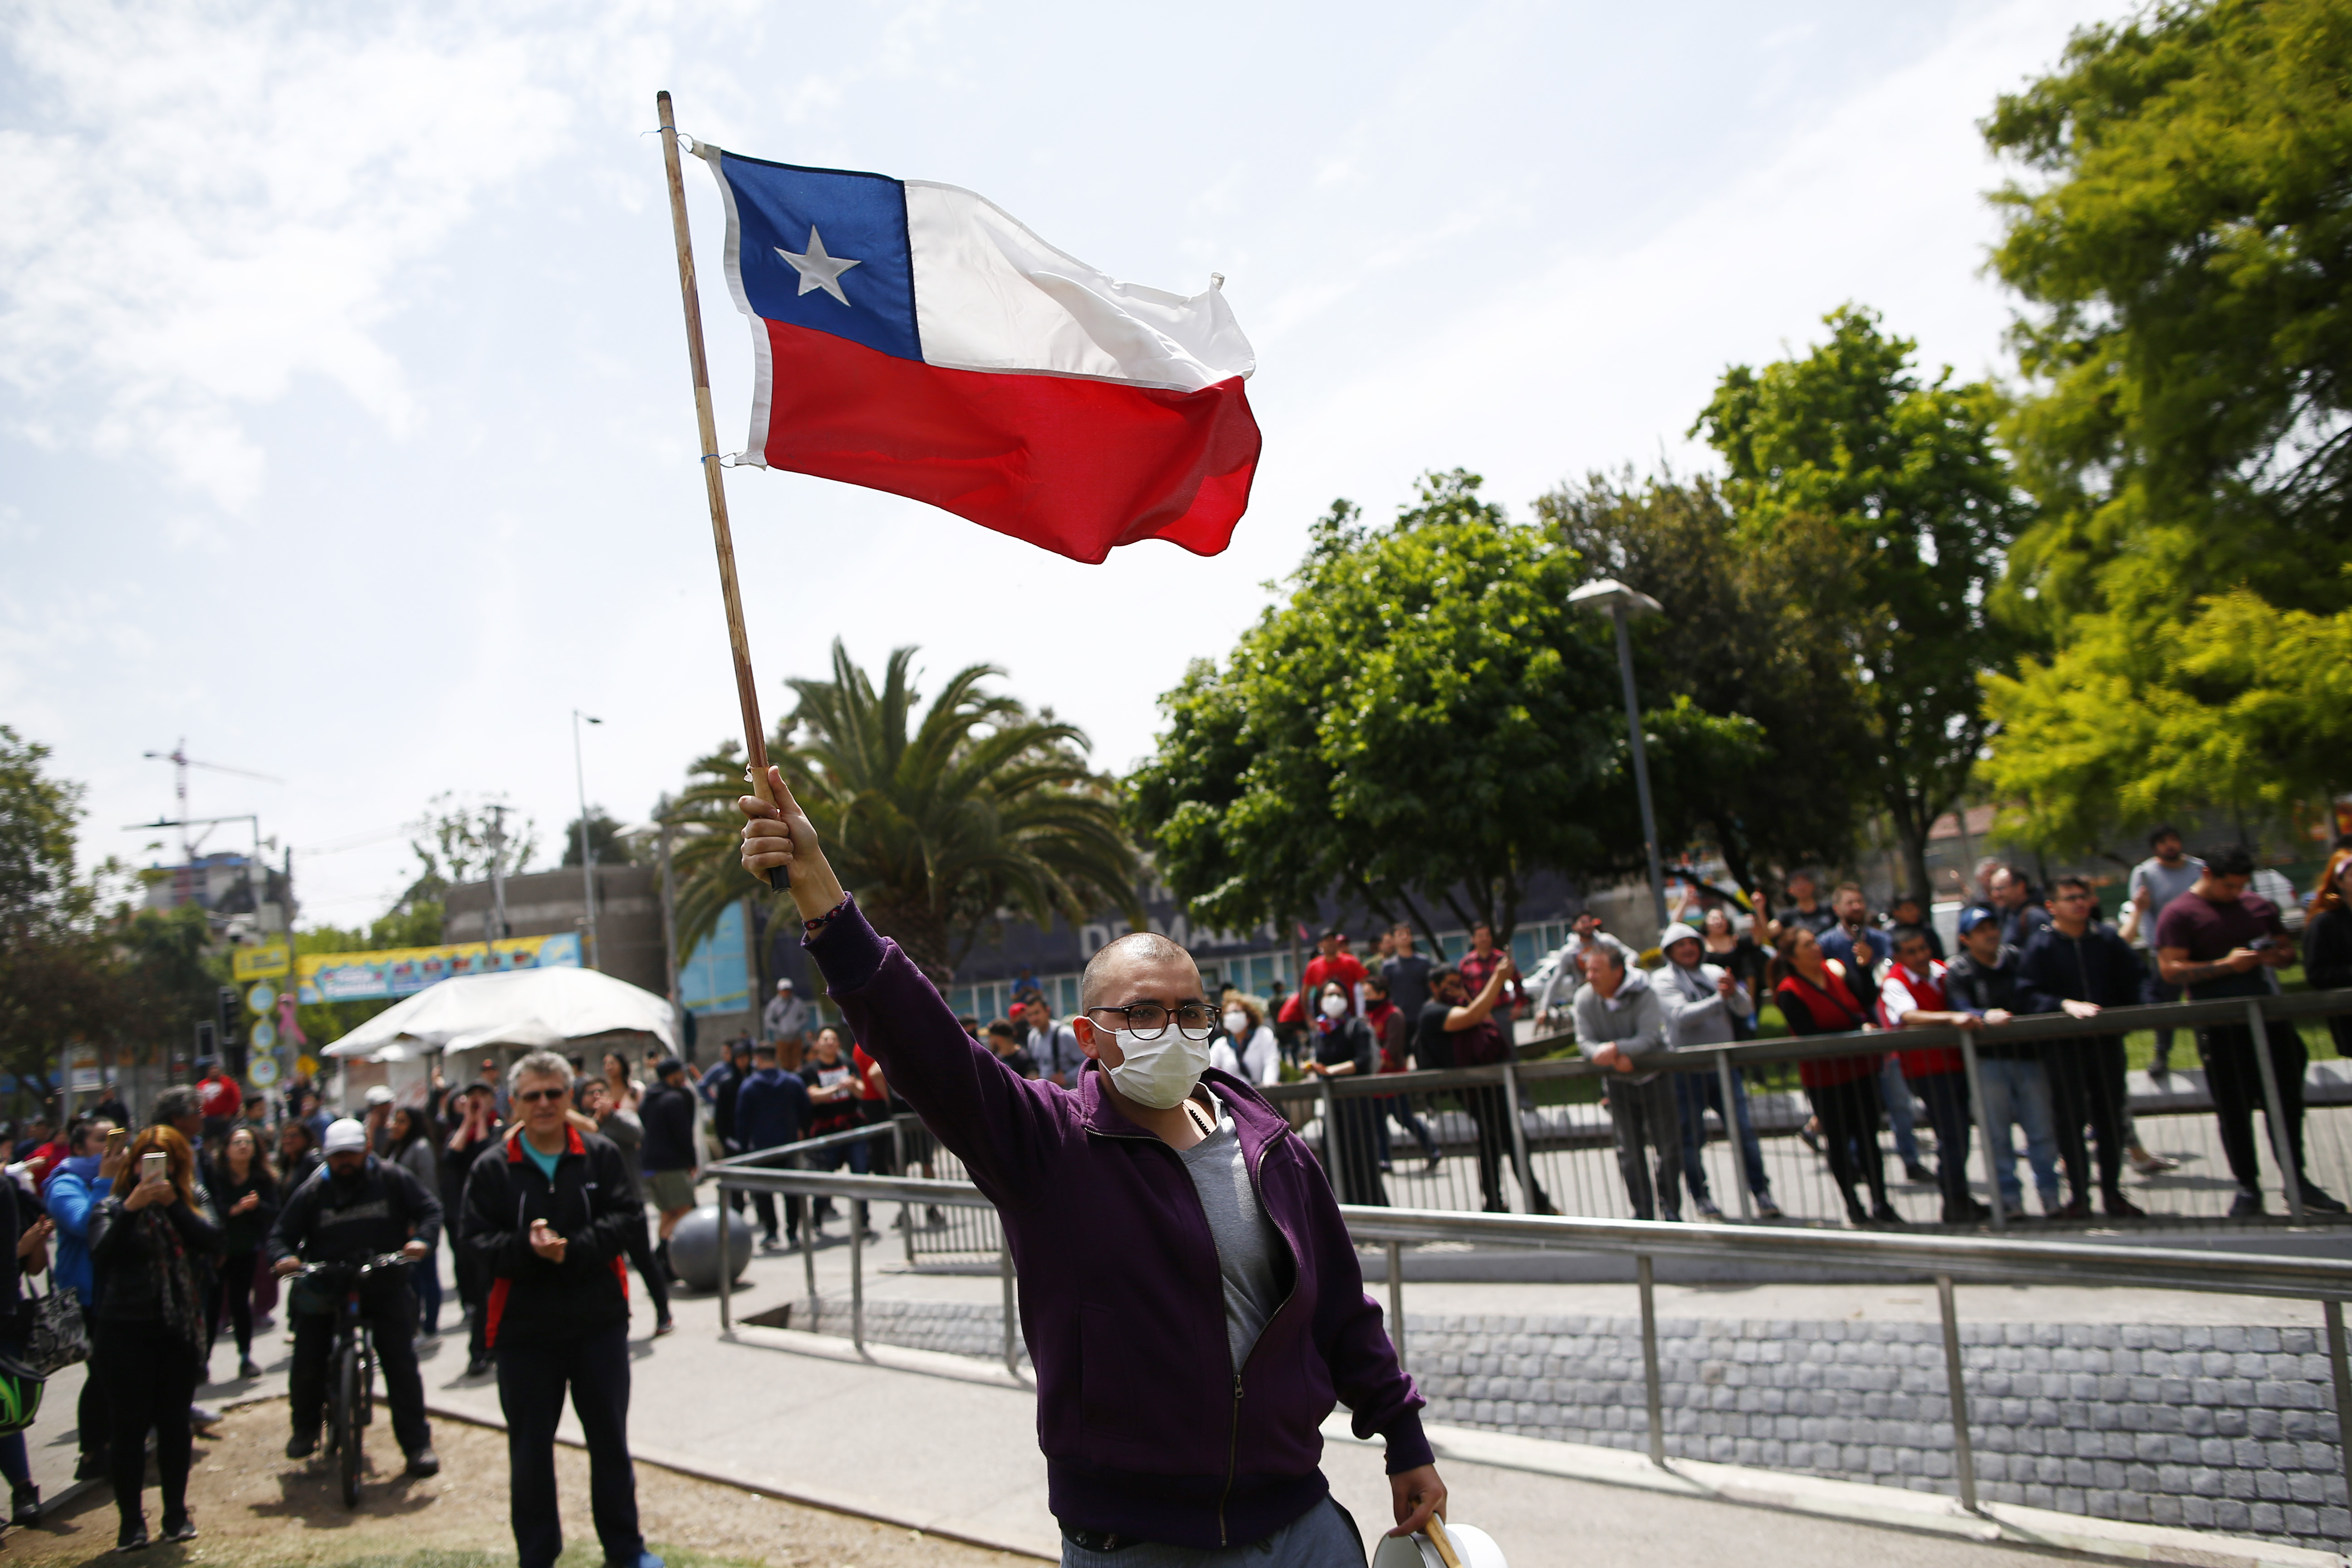 TOPSHOT - A demonstrator waves a chilean flag outside of the Plaza Maipu metro station during clashes between protesters and the riot police at Plaza de Maipu in Santiago, on October 19, 2019. - Chile's president declared a state of emergency in Santiago Friday night and gave the military responsibility for security after a day of violent protests over an increase in the price of metro tickets. (Photo by Pablo VERA / AFP) (Photo by PABLO VERA/AFP via Getty Images)